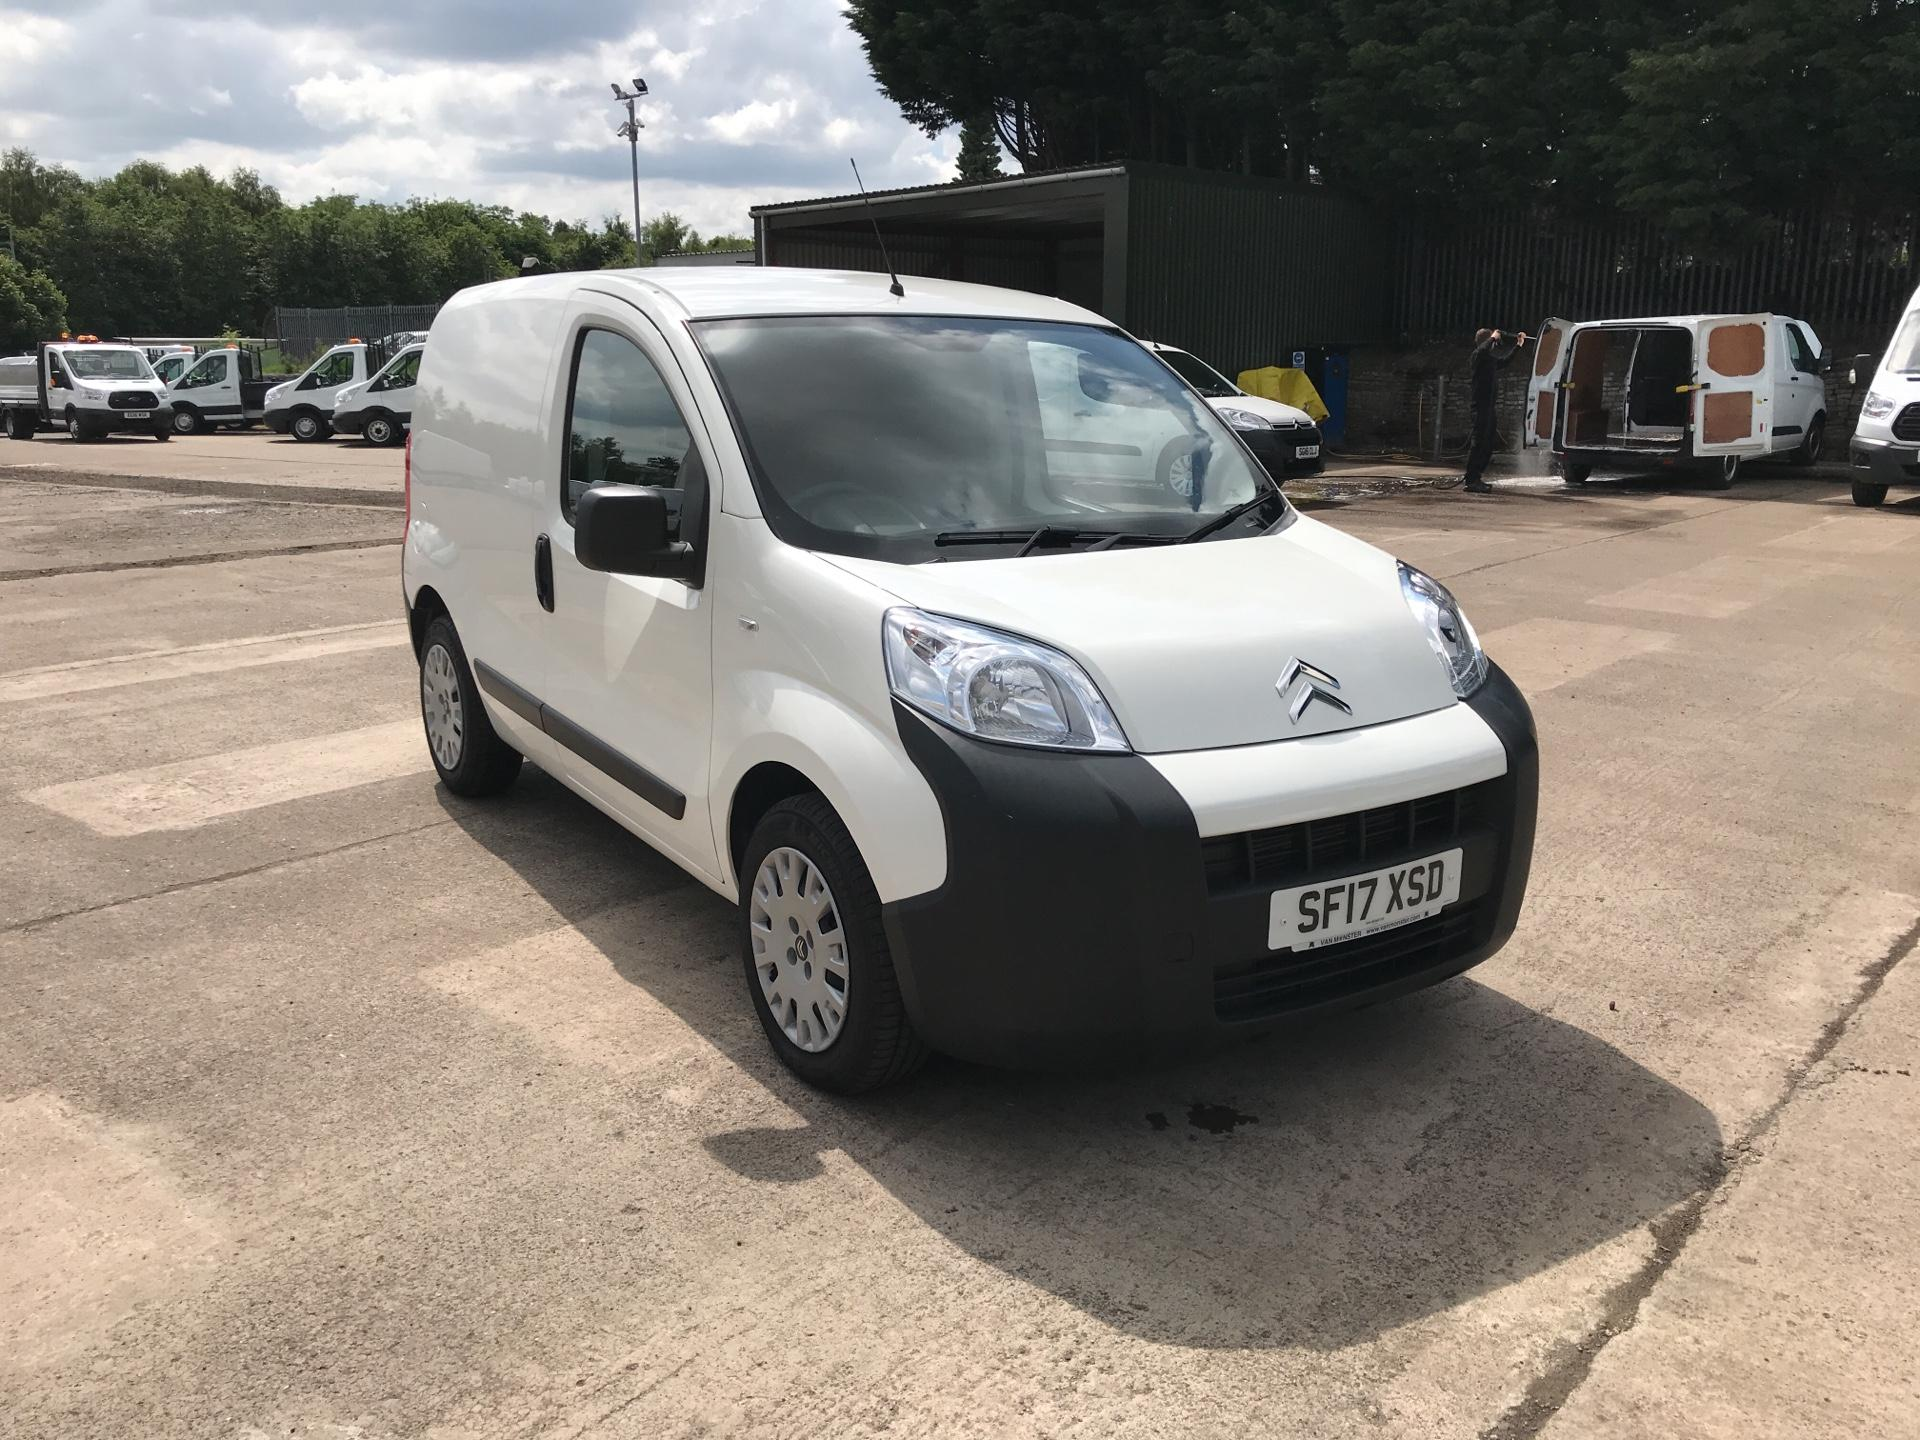 2017 Citroen Nemo 1.3 Hdi 80 Enterprise (SF17XSD)